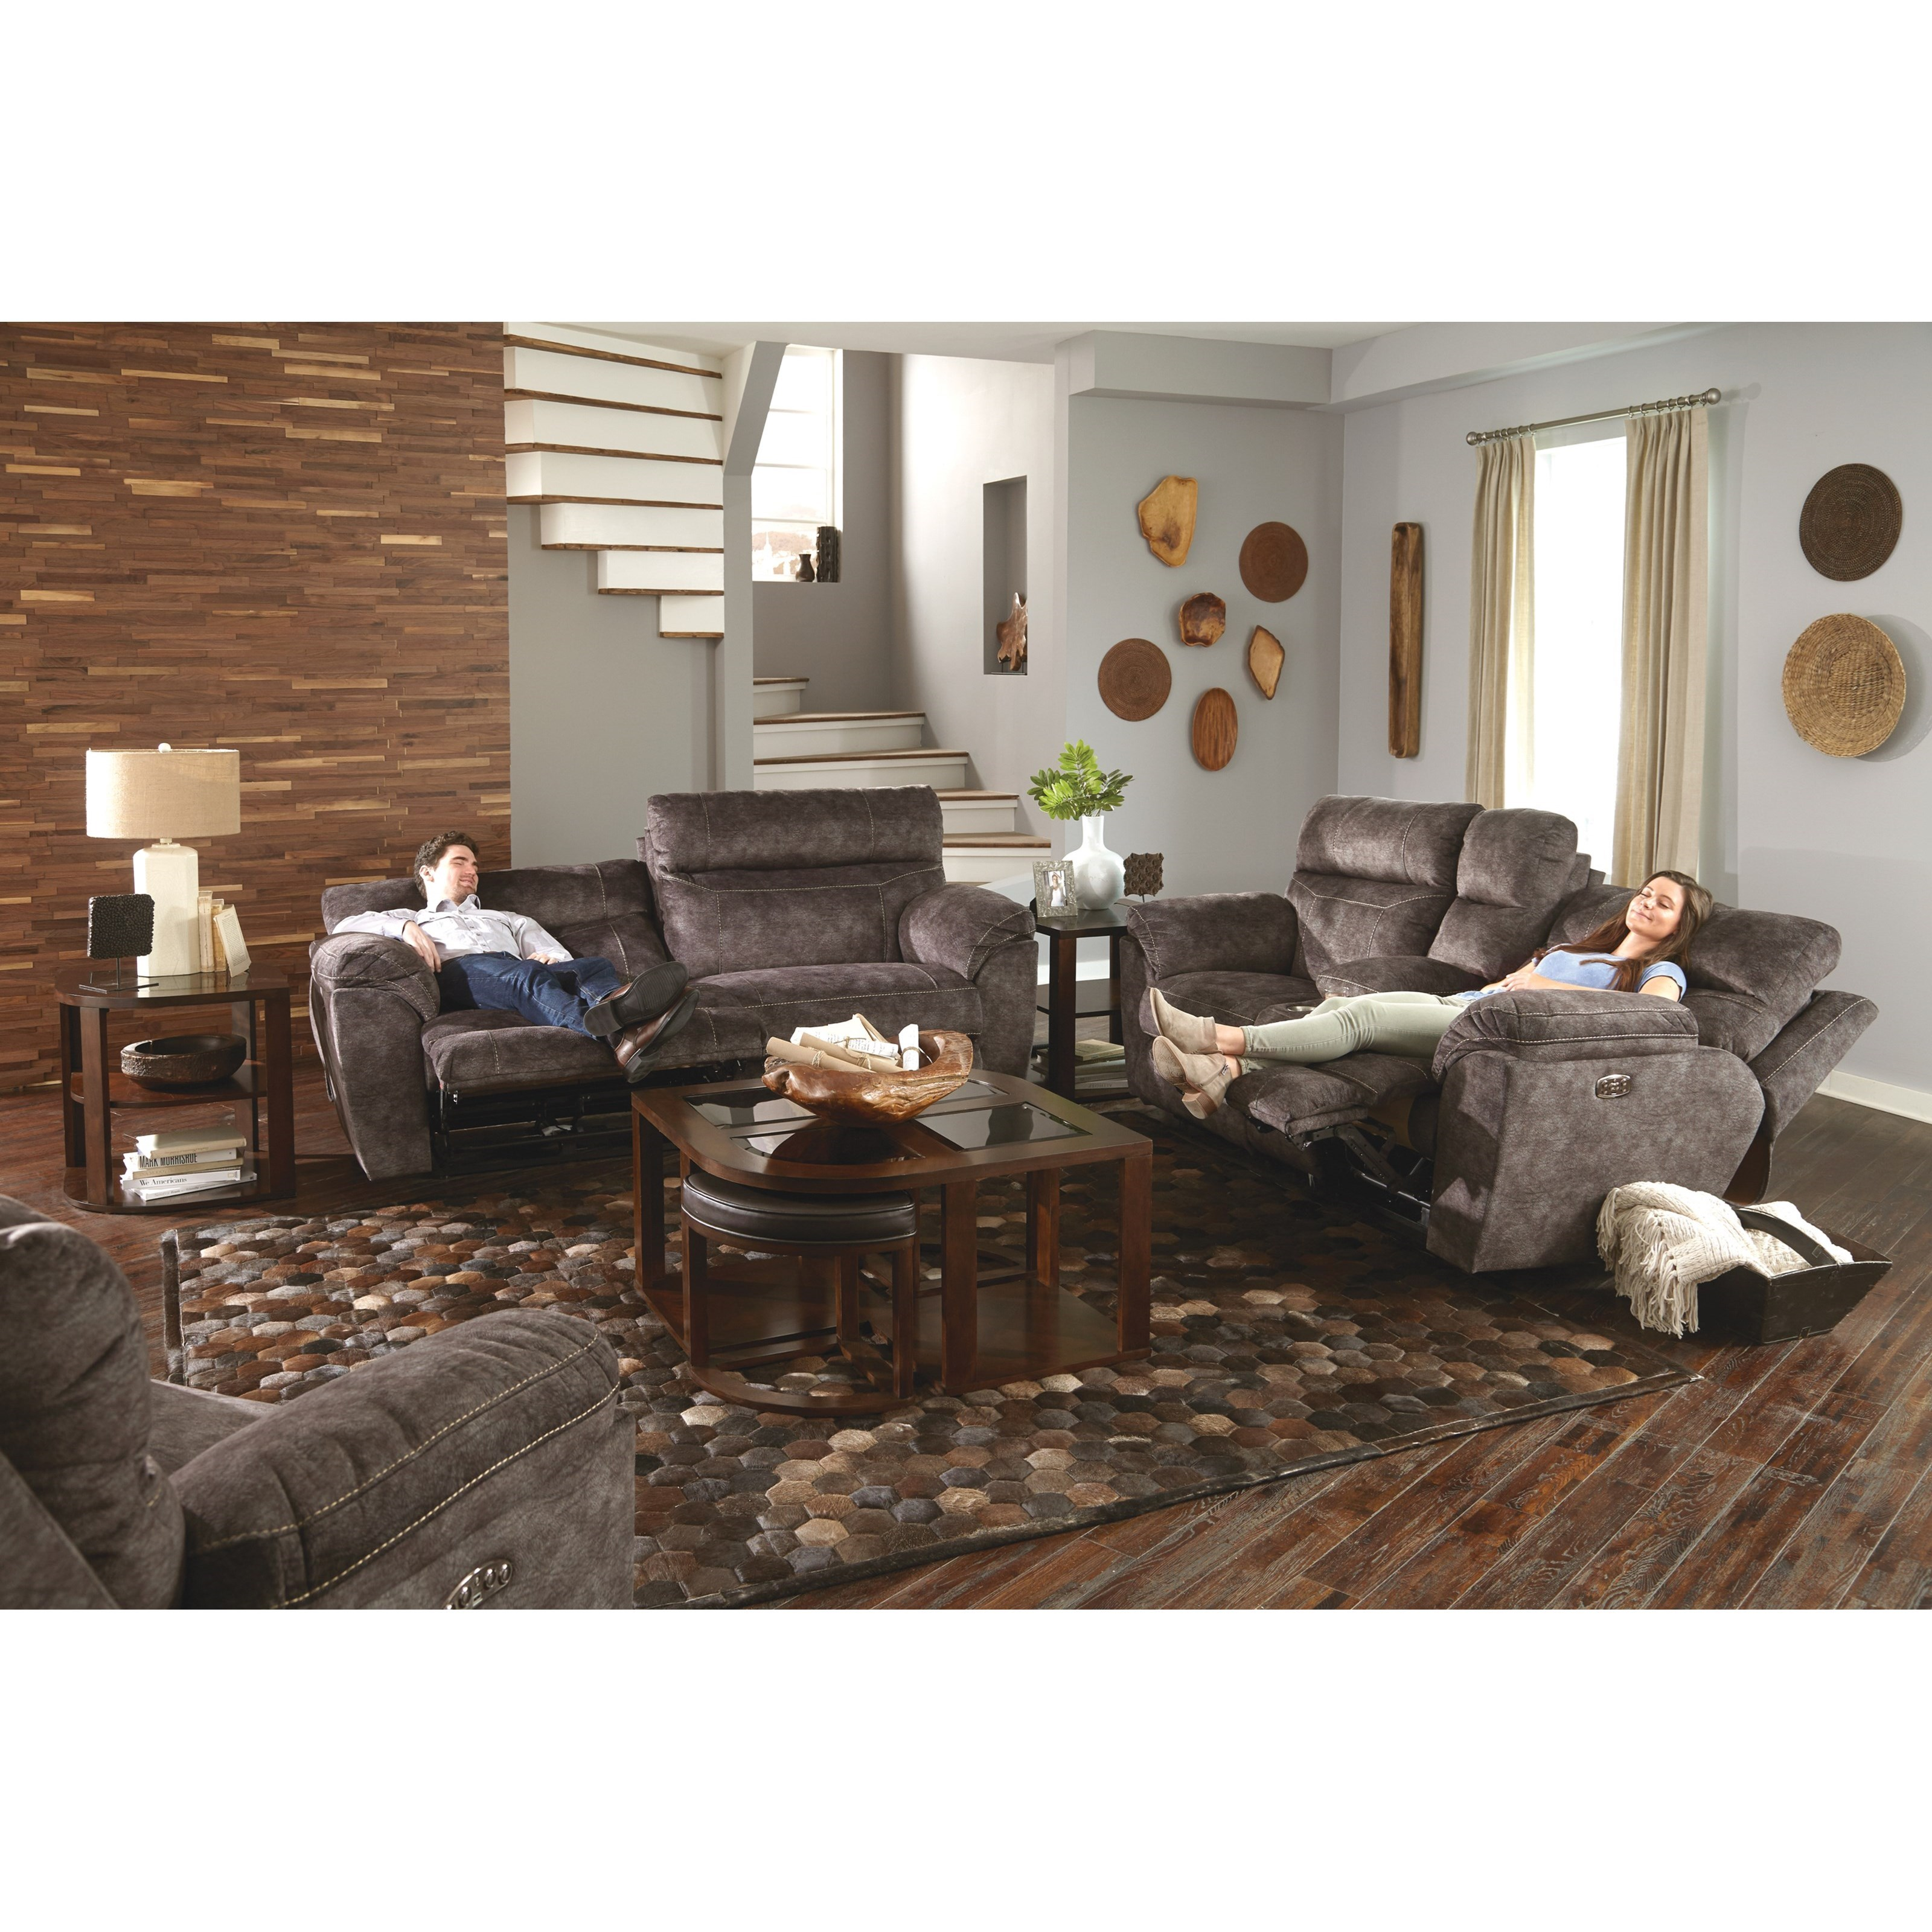 Sedona Living Room Collection